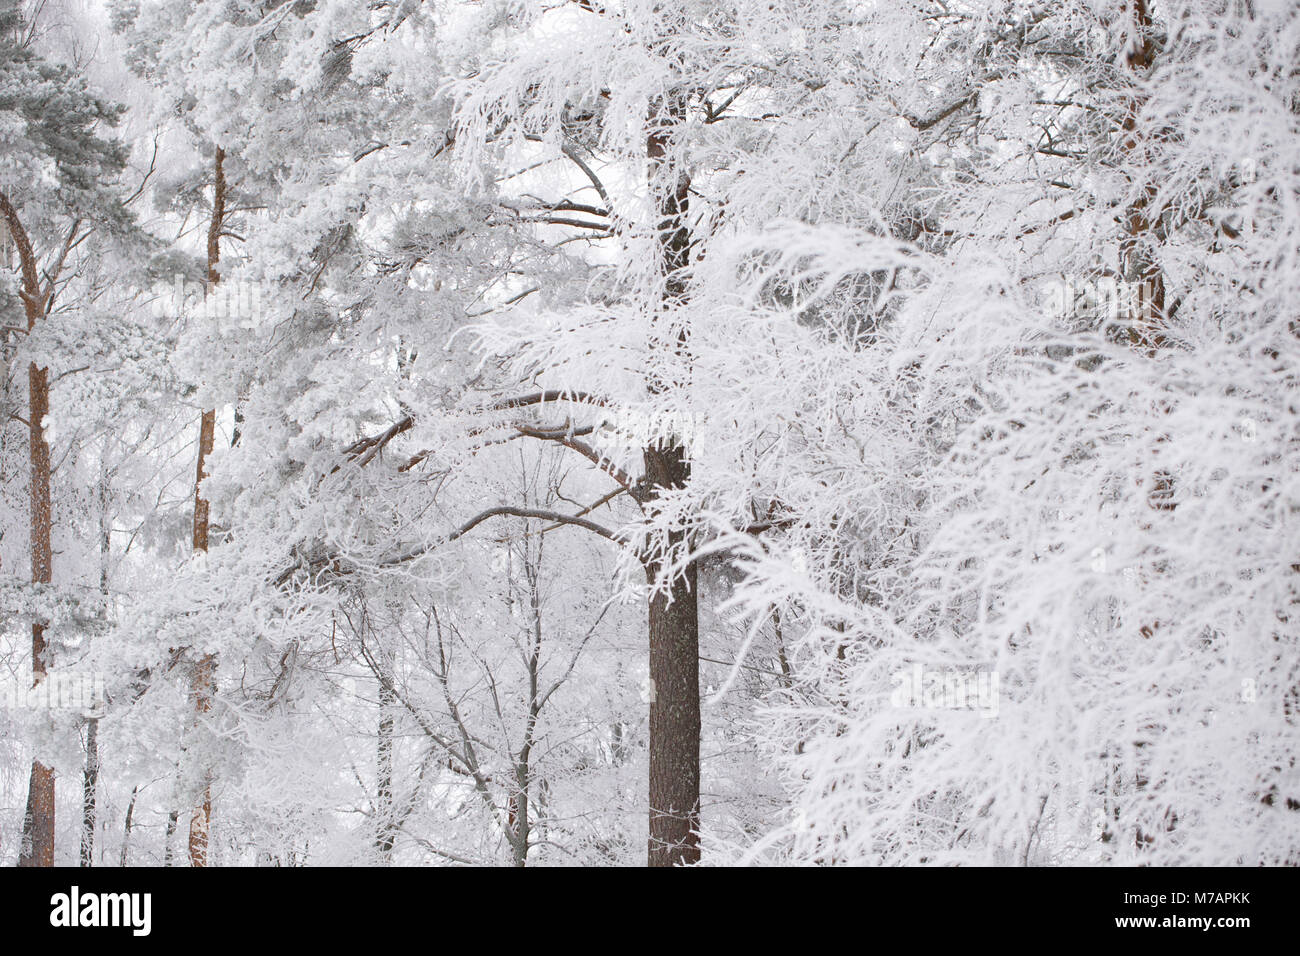 Frozen trees, covered with thick white hoarfrost, blurred background - Stock Image